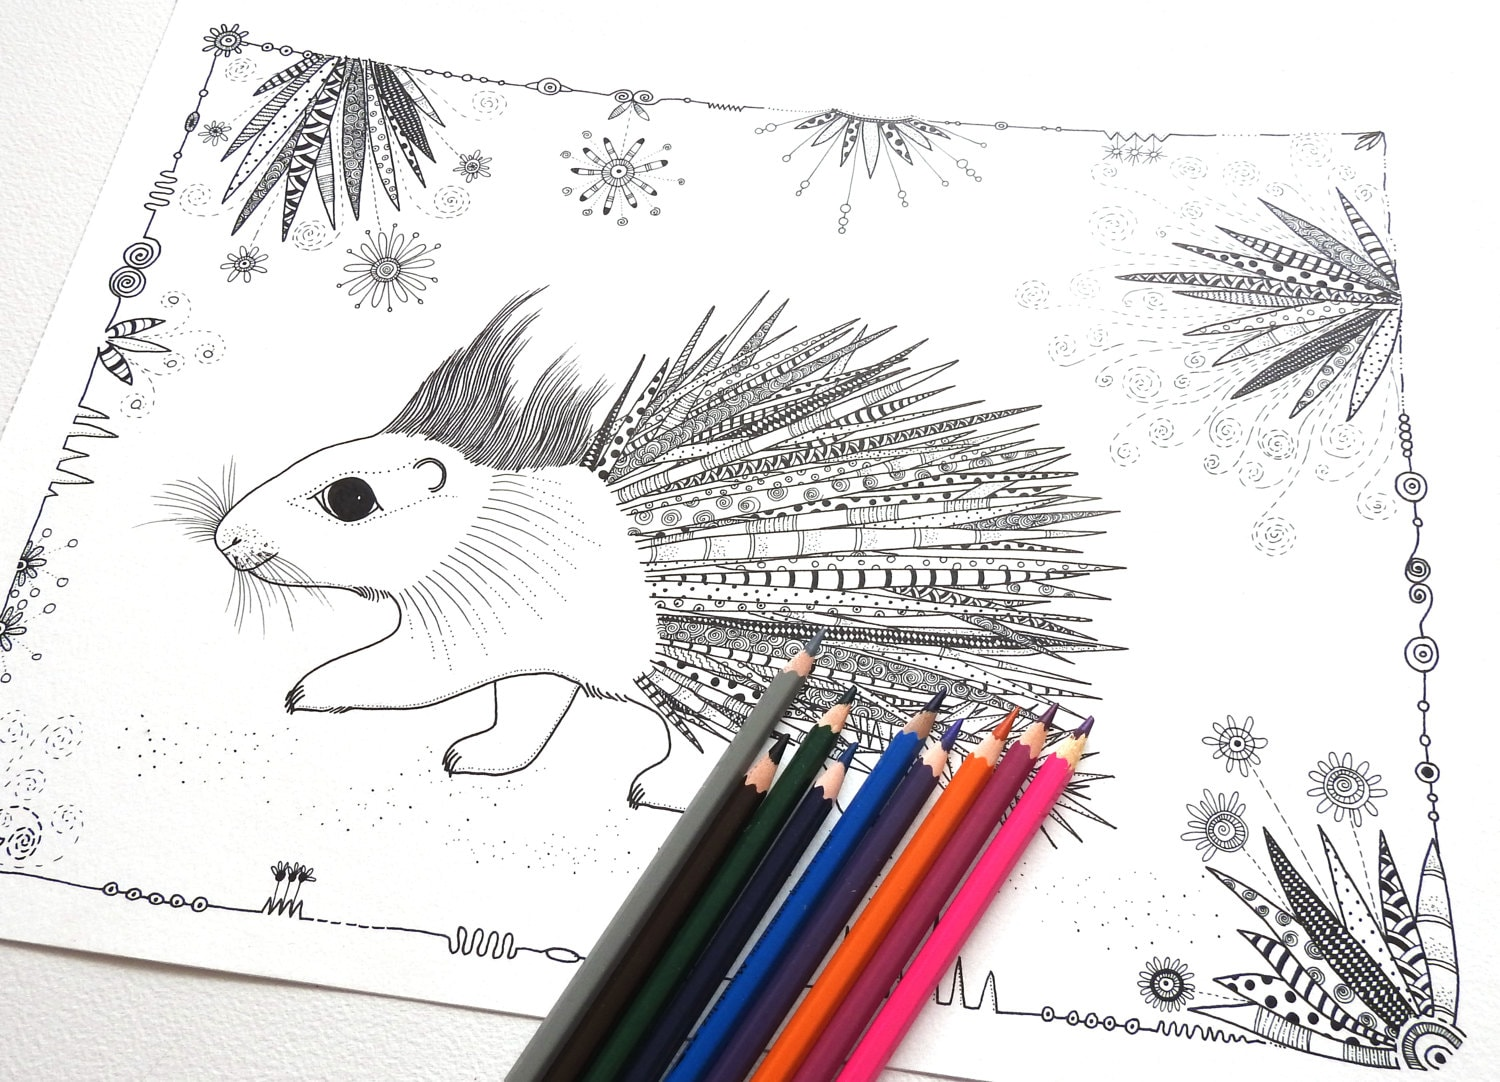 Porcupine Coloring Page Colouring Pages Adult Colouring | Etsy